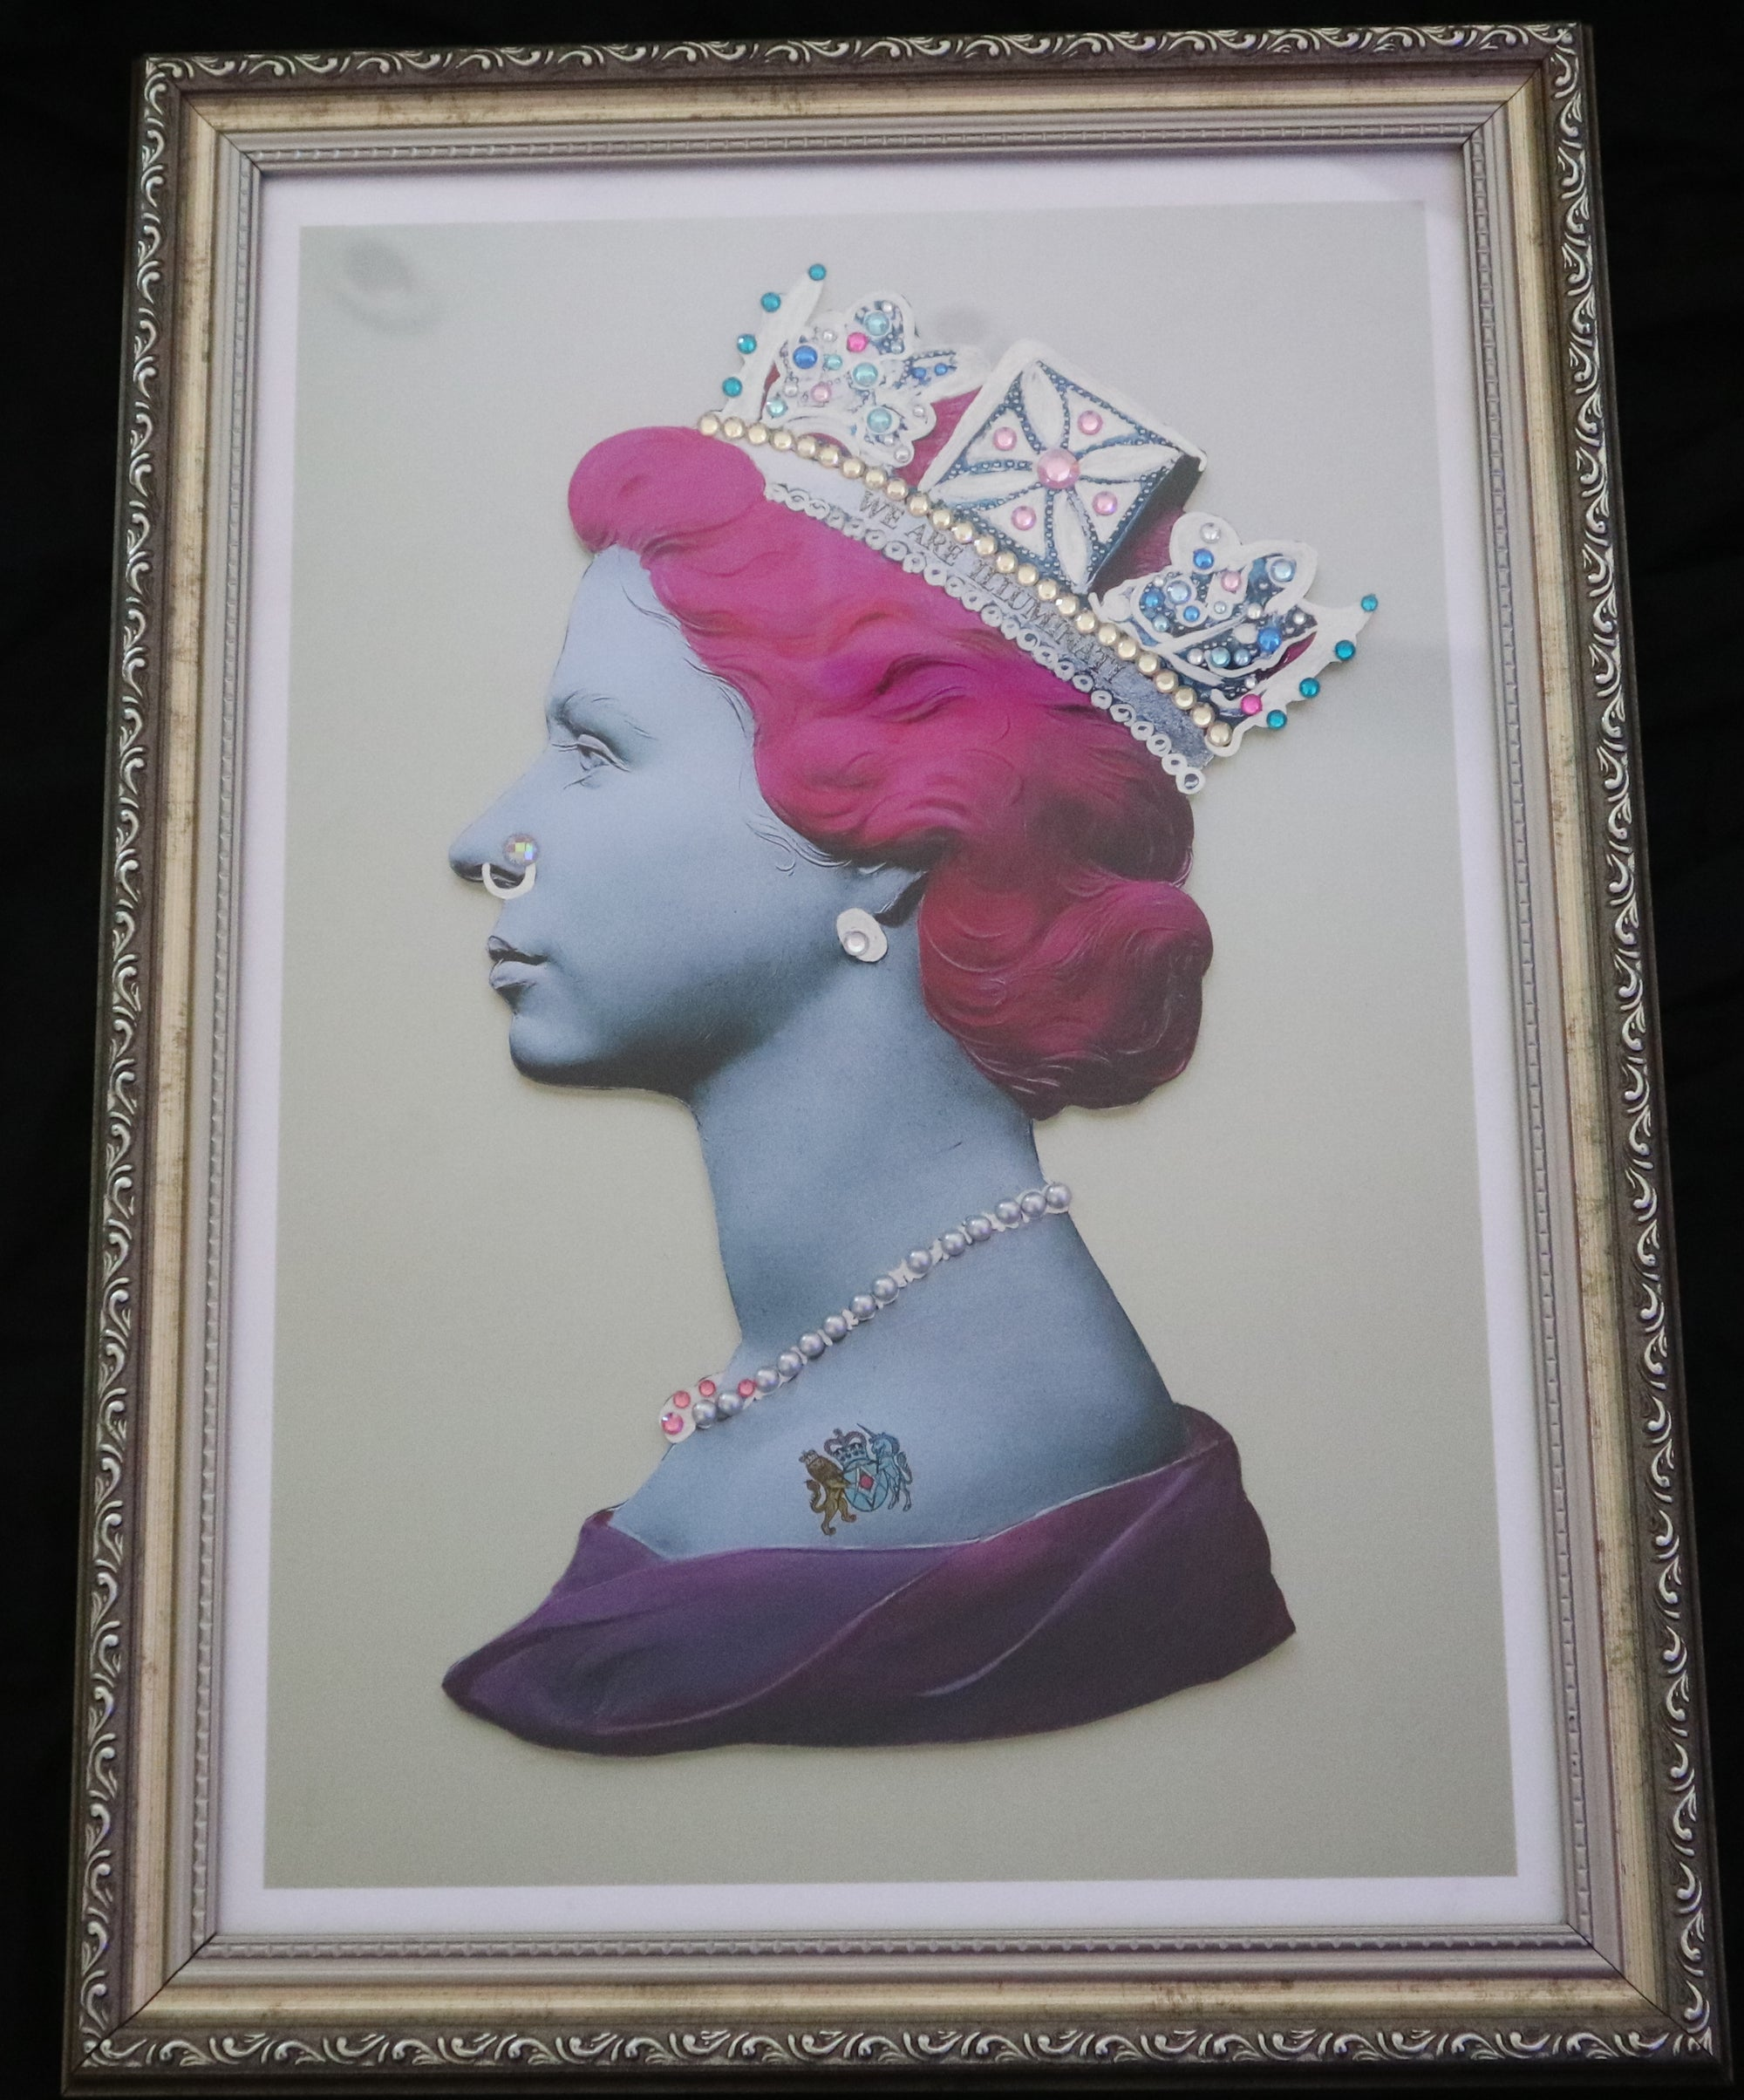 Illuminati Neon - Mini Pink Silver Punk Queen (Framed)